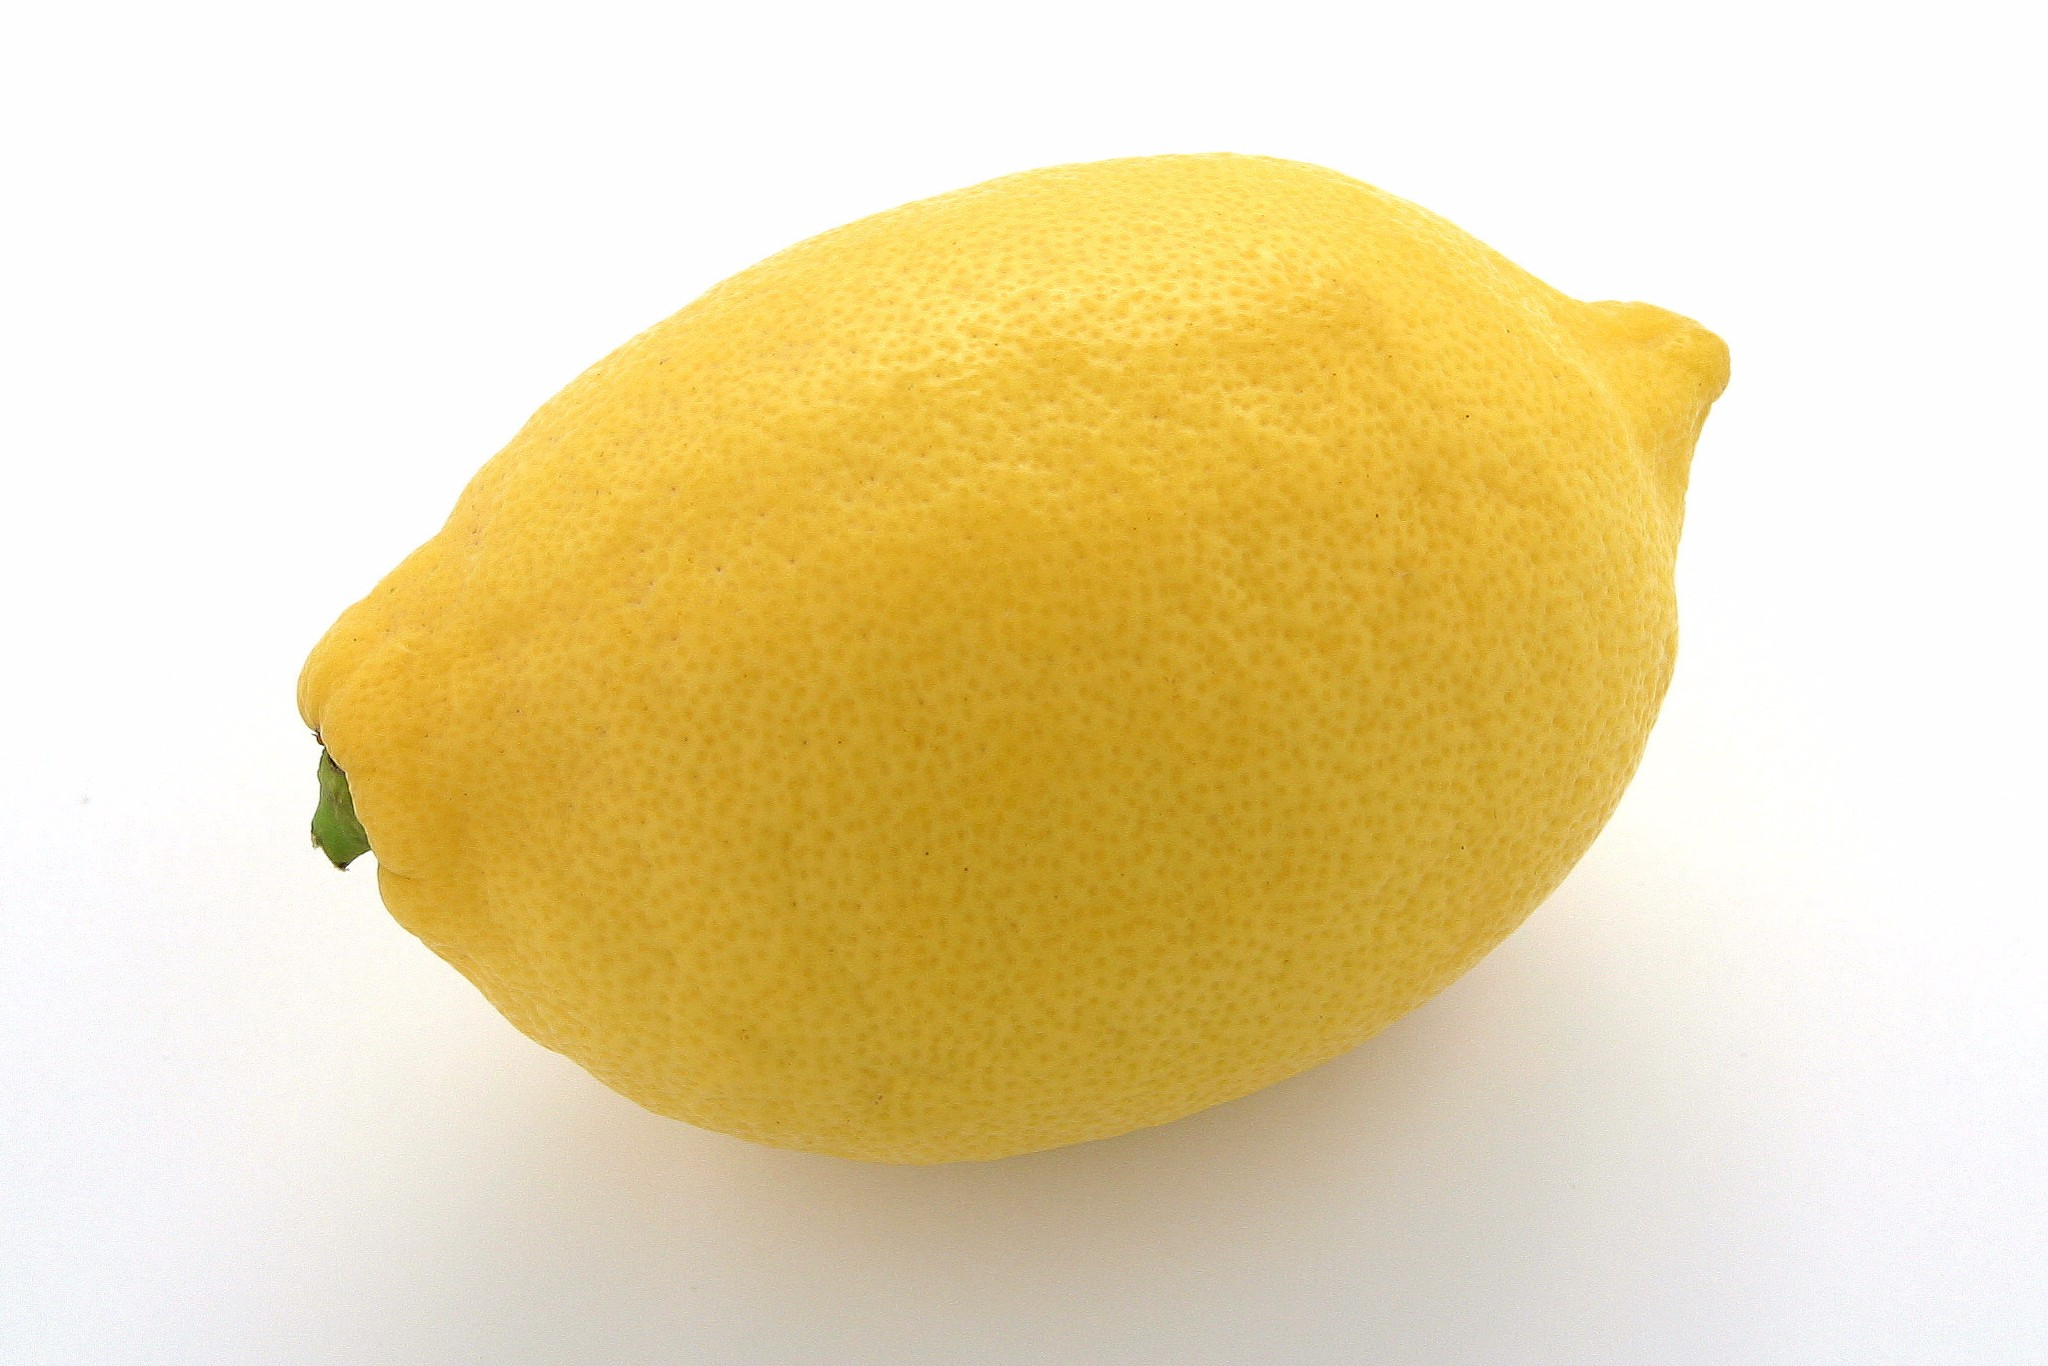 Chilean lemons would be allowed into the US without needing methyl bromide fumigation under a change being considered by the US Animal and Plant Health Inspection Service (Aphis).